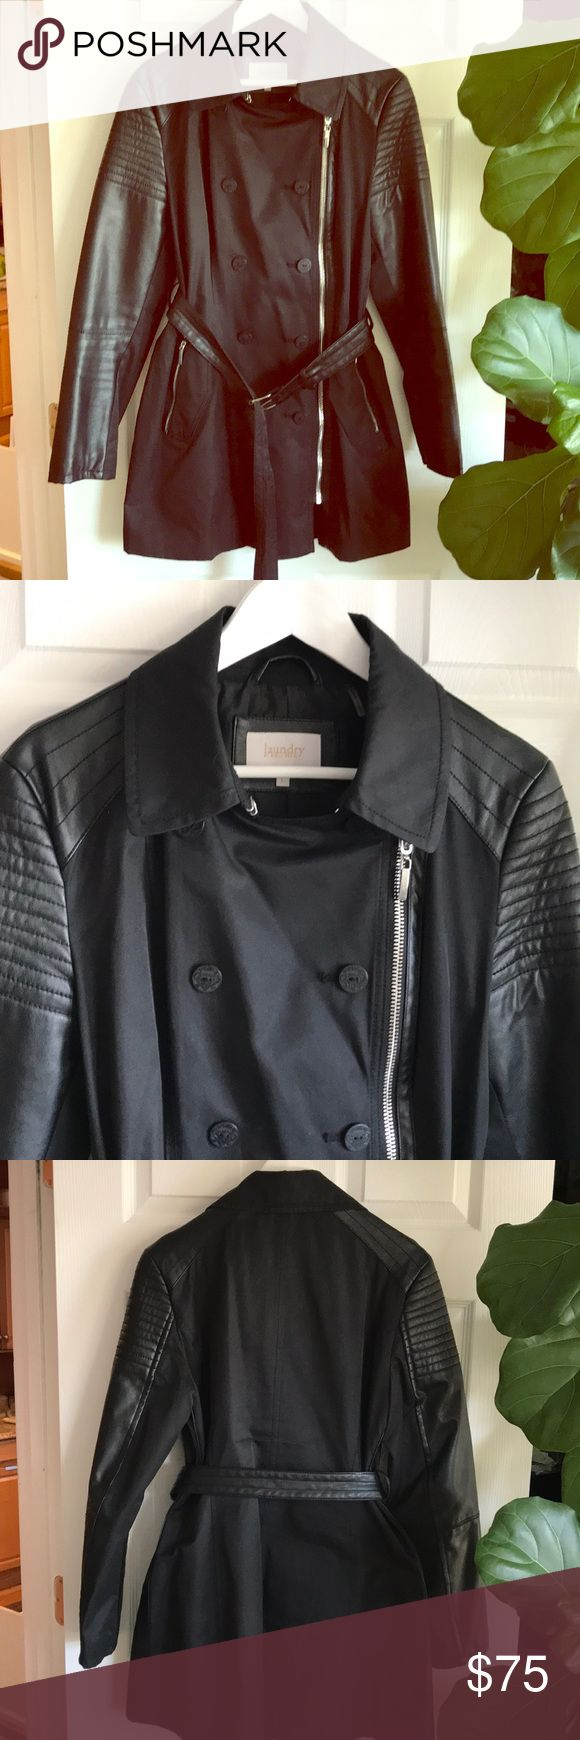 Half leather Rain coat laundry Half leather Rain coat - laundry . Laundry Jackets & Coats Trench Coats